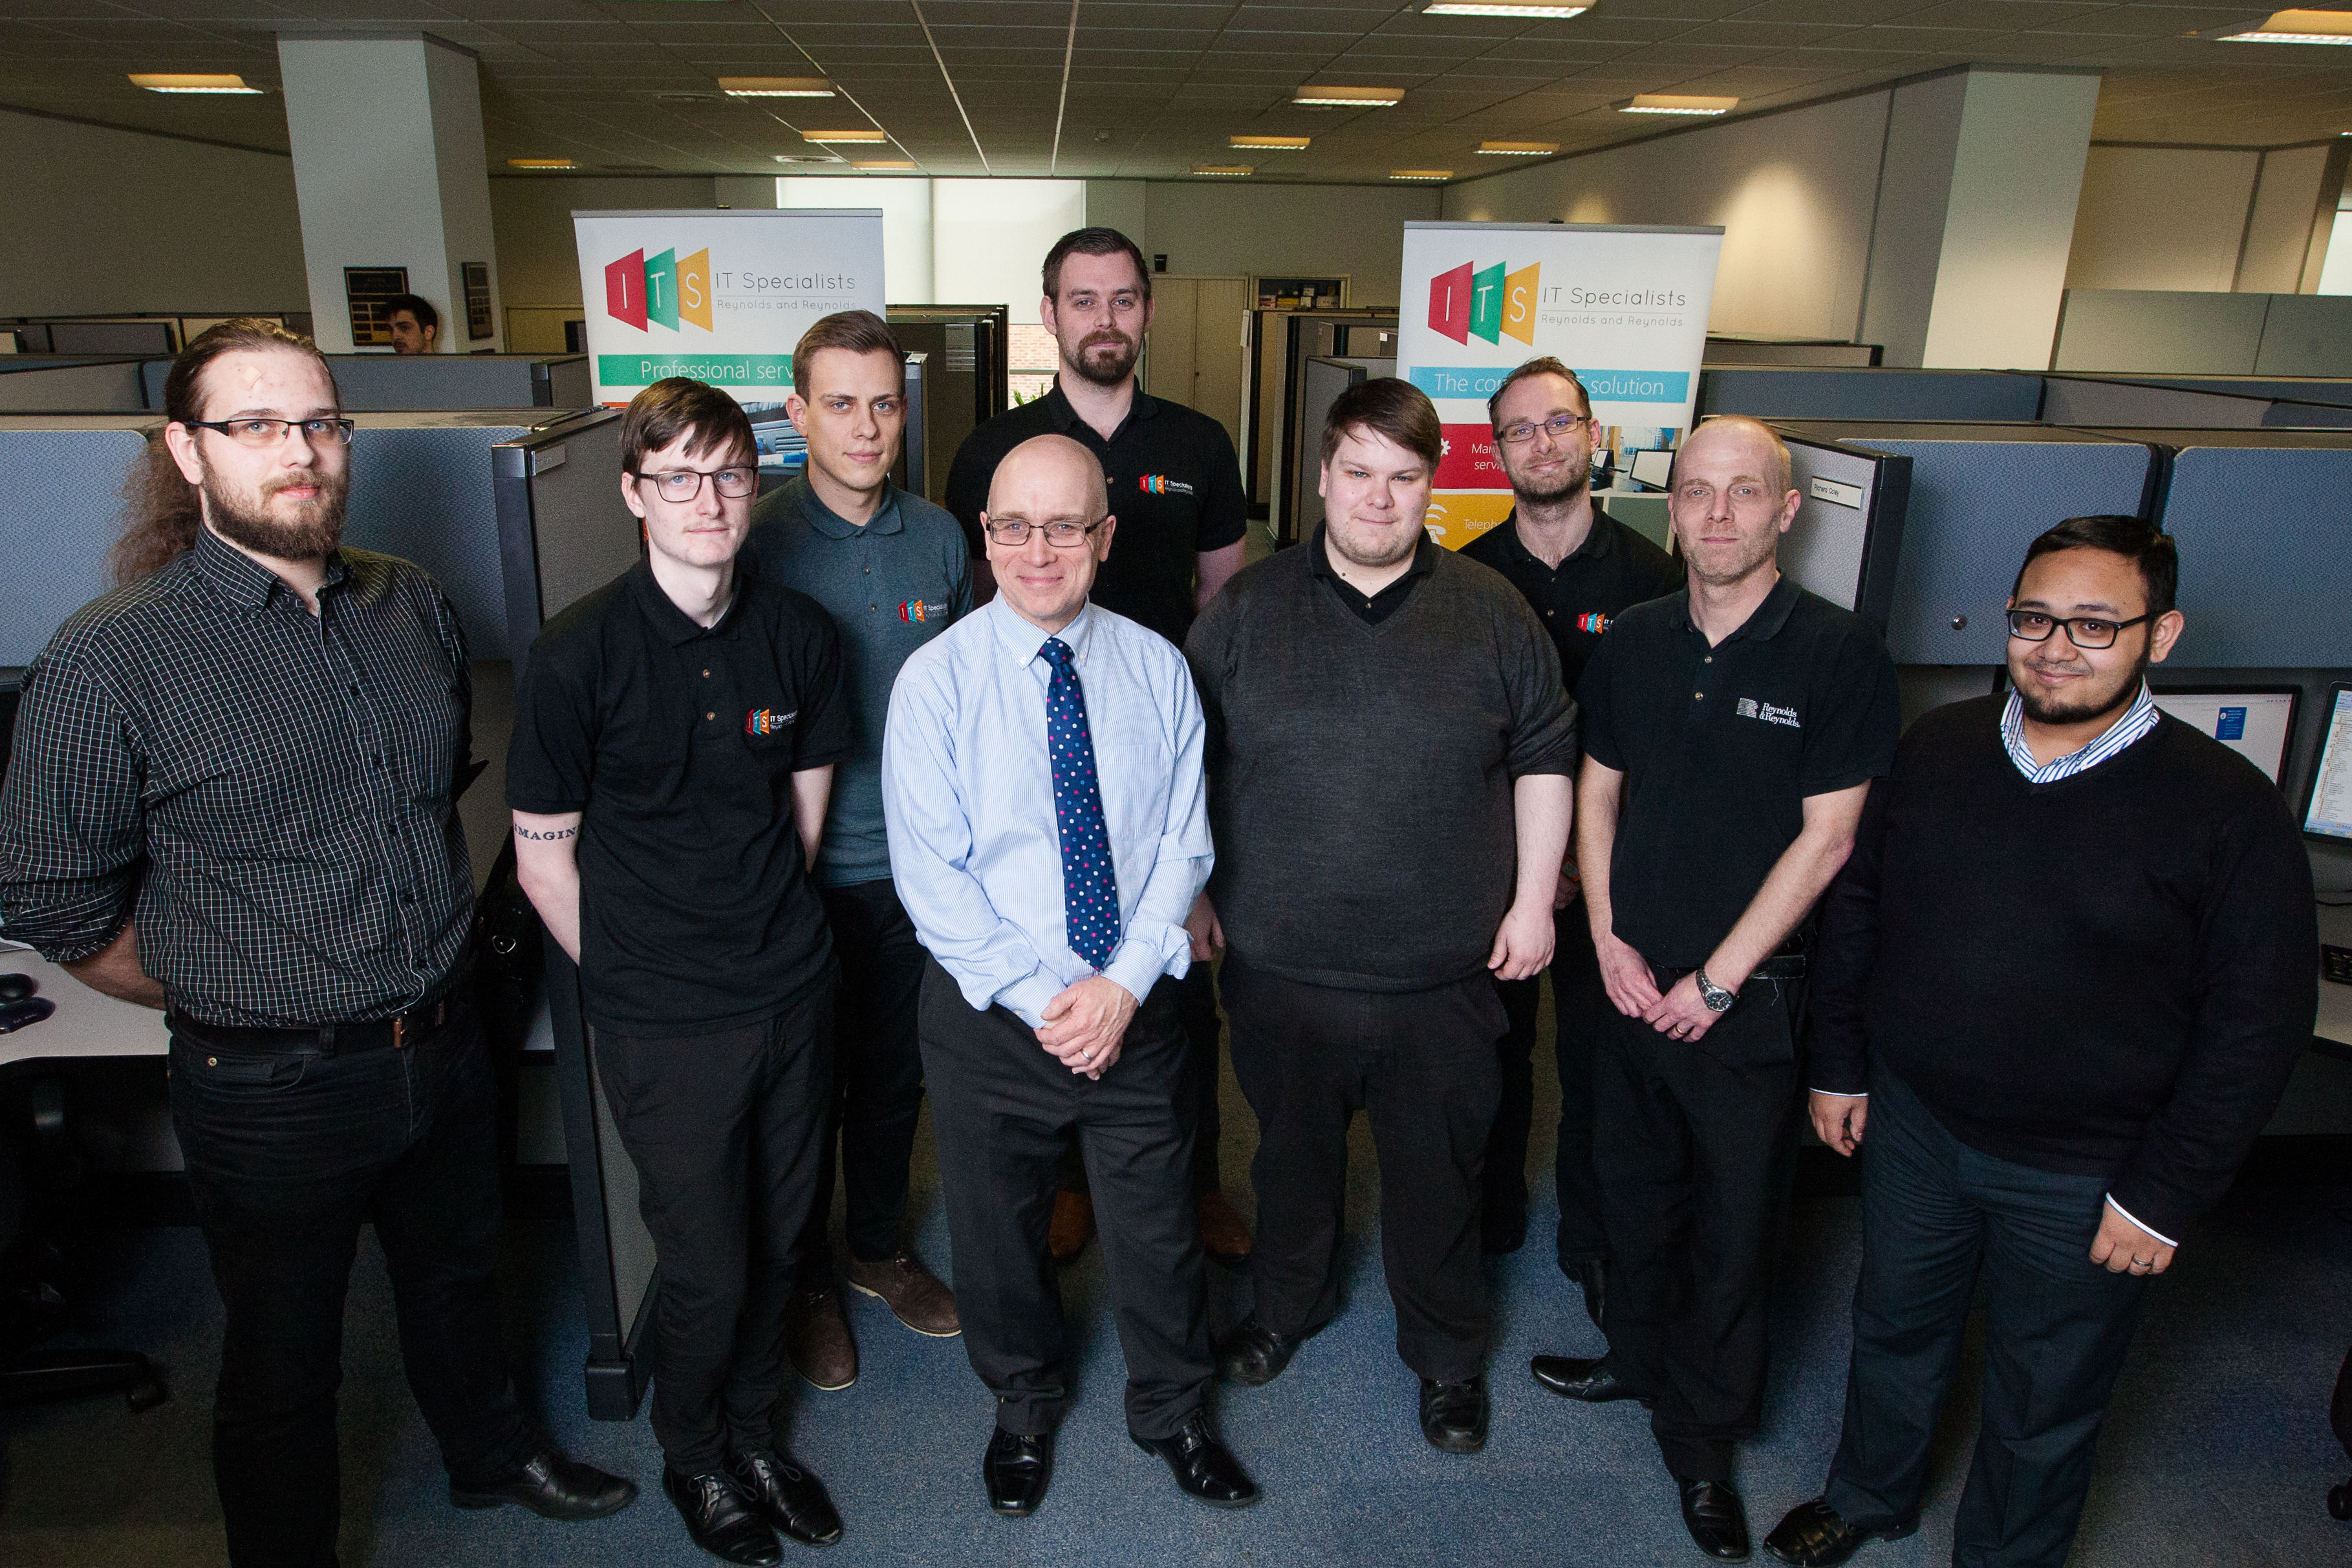 Birmingham service desk booming for IT Specialists, a nationwide MSP